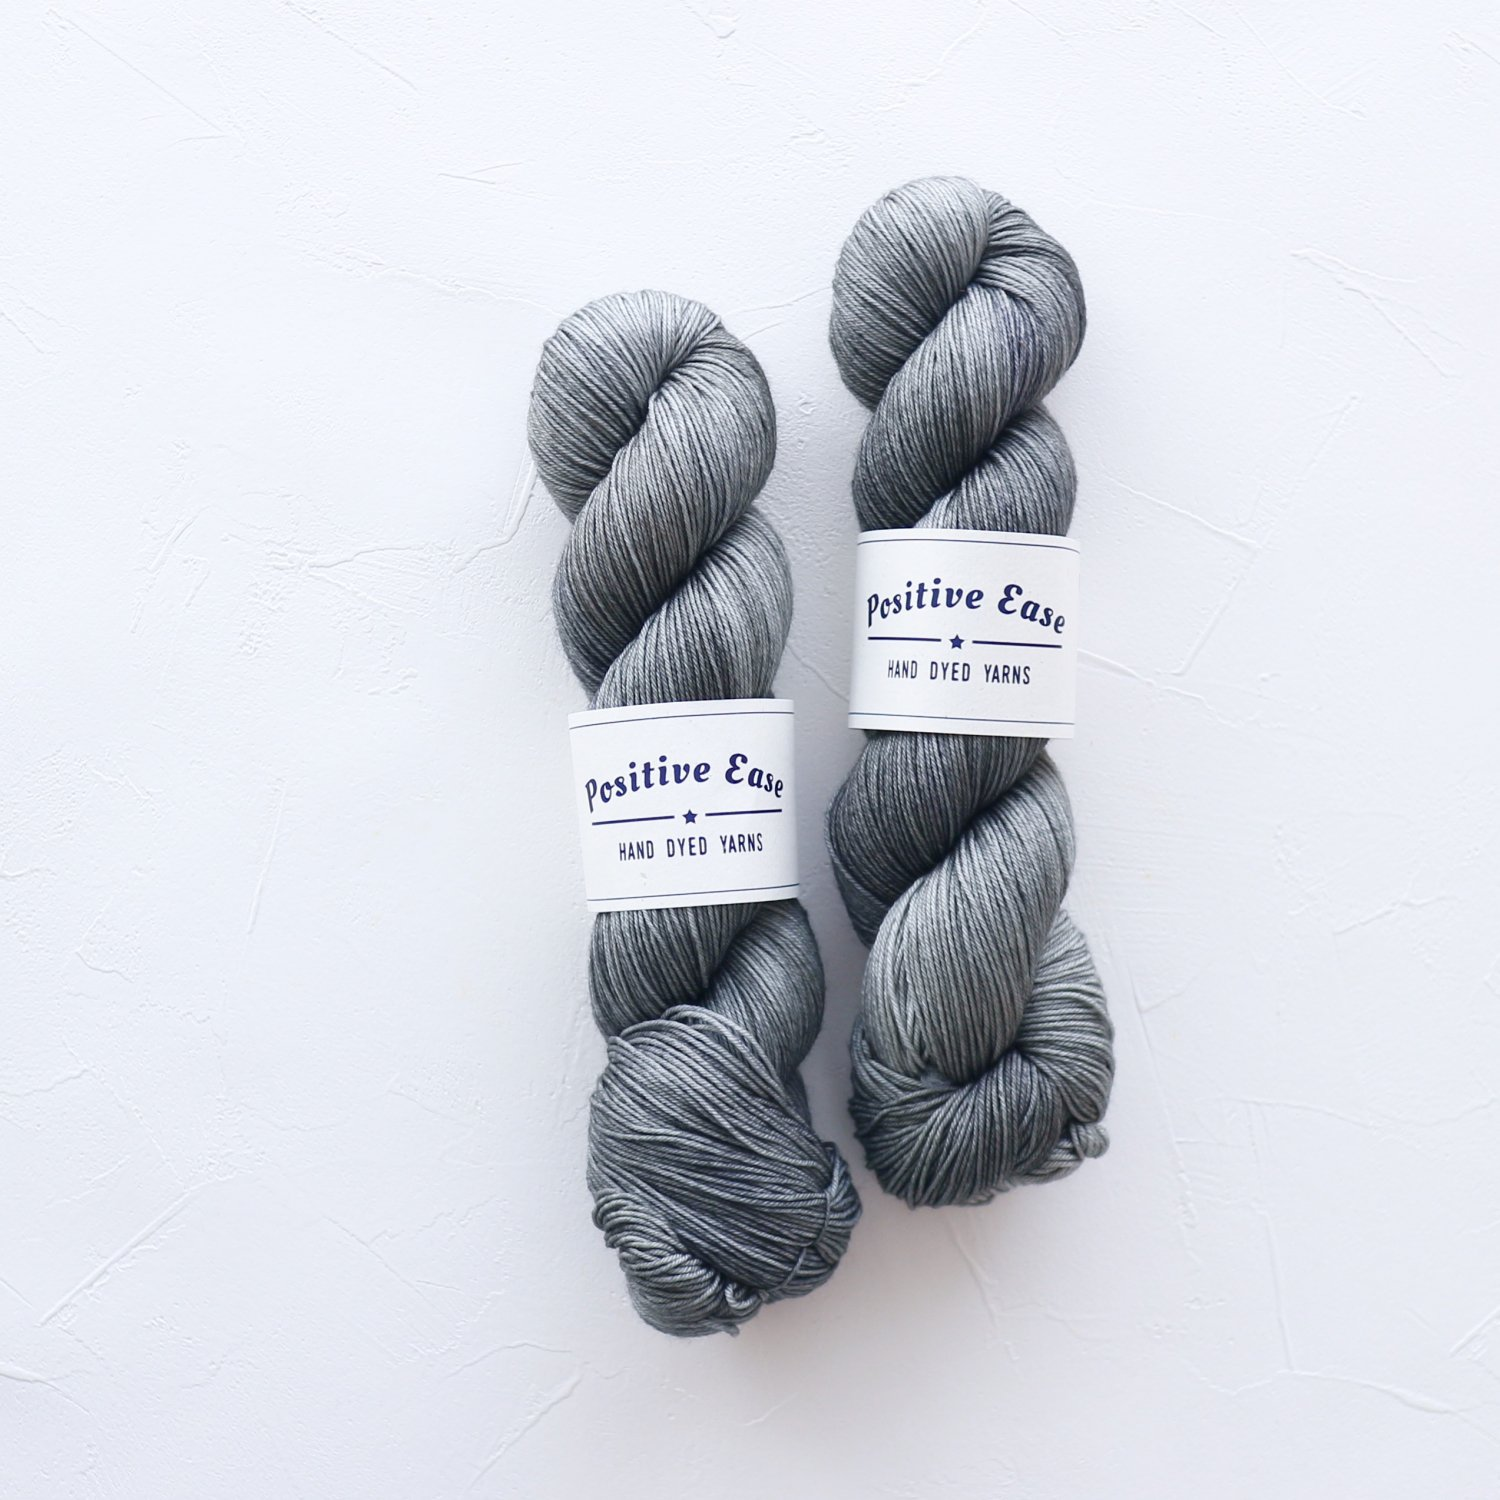 【Positive Ease】<br>Pure Merino<br>Theory